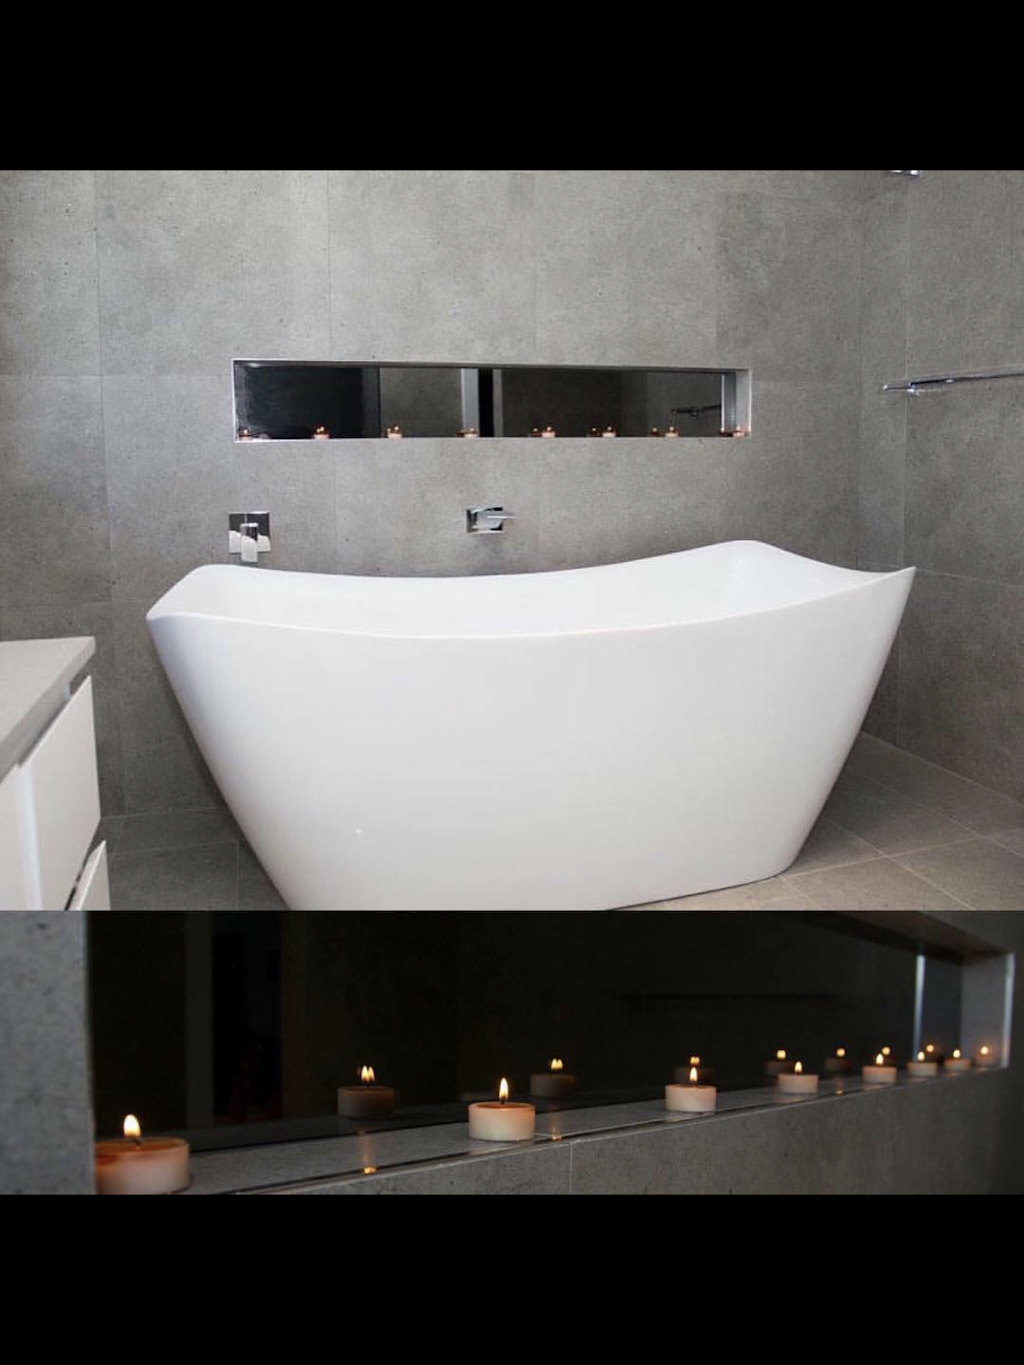 C & S Tiles and Bathrooms | home goods store | 3/8 Maxwell Pl, Narellan NSW 2567, Australia | 0246664097 OR +61 2 4666 4097